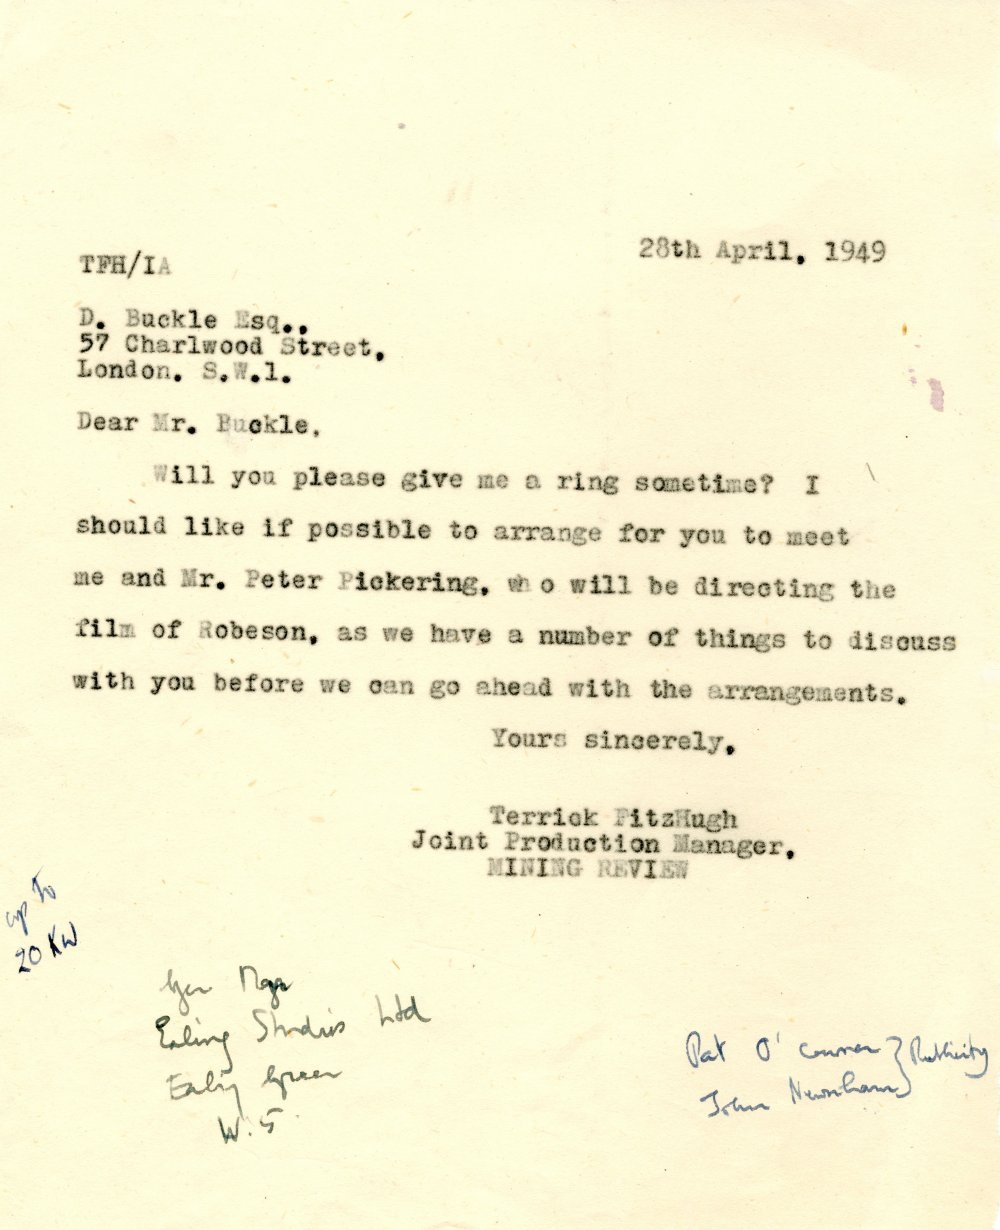 DATA's first contact with Robeson. Desmond Buckle was a London-based West African activist who acted as a sort of unofficial secretary for Robeson during his UK visit. Note the handwritten record of Robeson's answers to DATA's queries